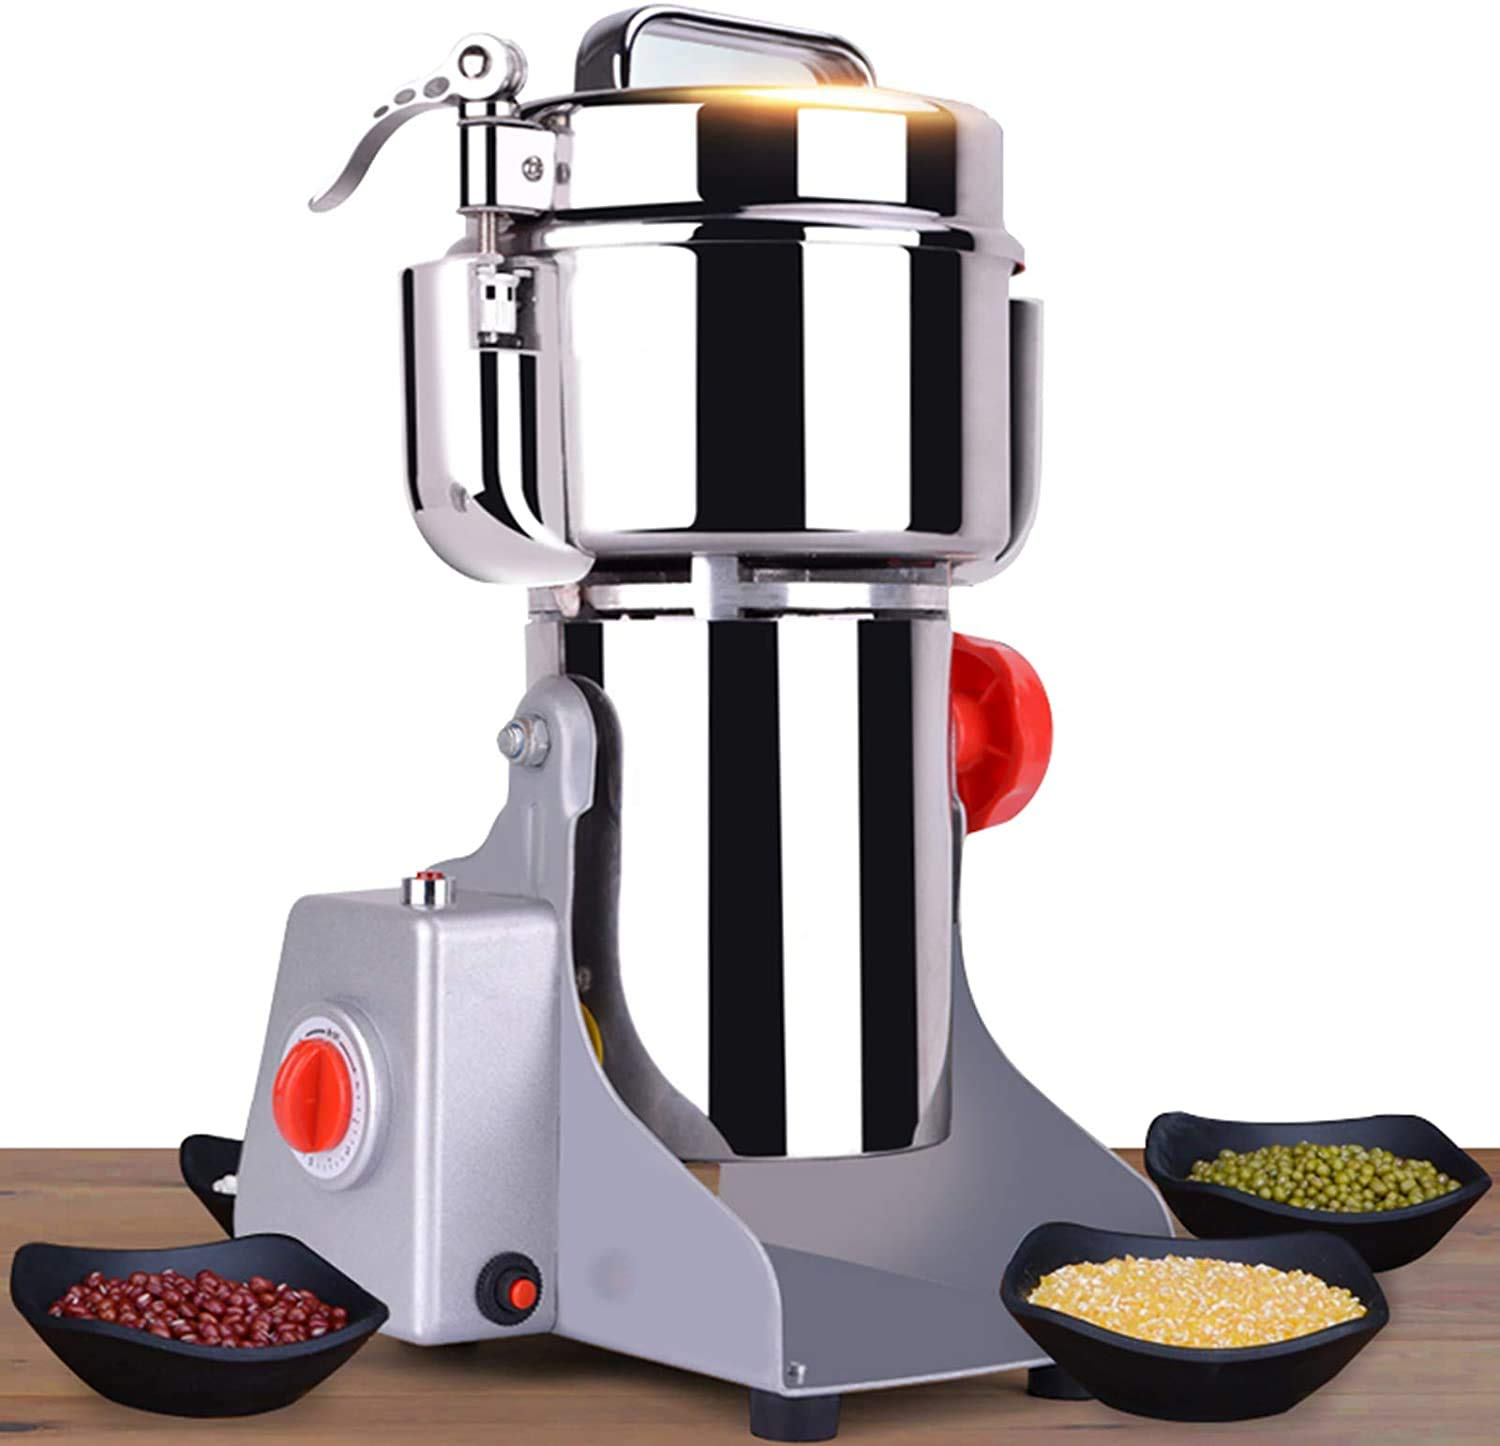 CGOLDENWALL 2000g Open-Cover-Stop 3000W Electric Grain Grinder 32000RPM High Speed Superfine Grain Mill Spice/Herb/Coffee/Nut/Powder/Cereal Grinder with Overload Protection- Timer- Commercial Motor CE